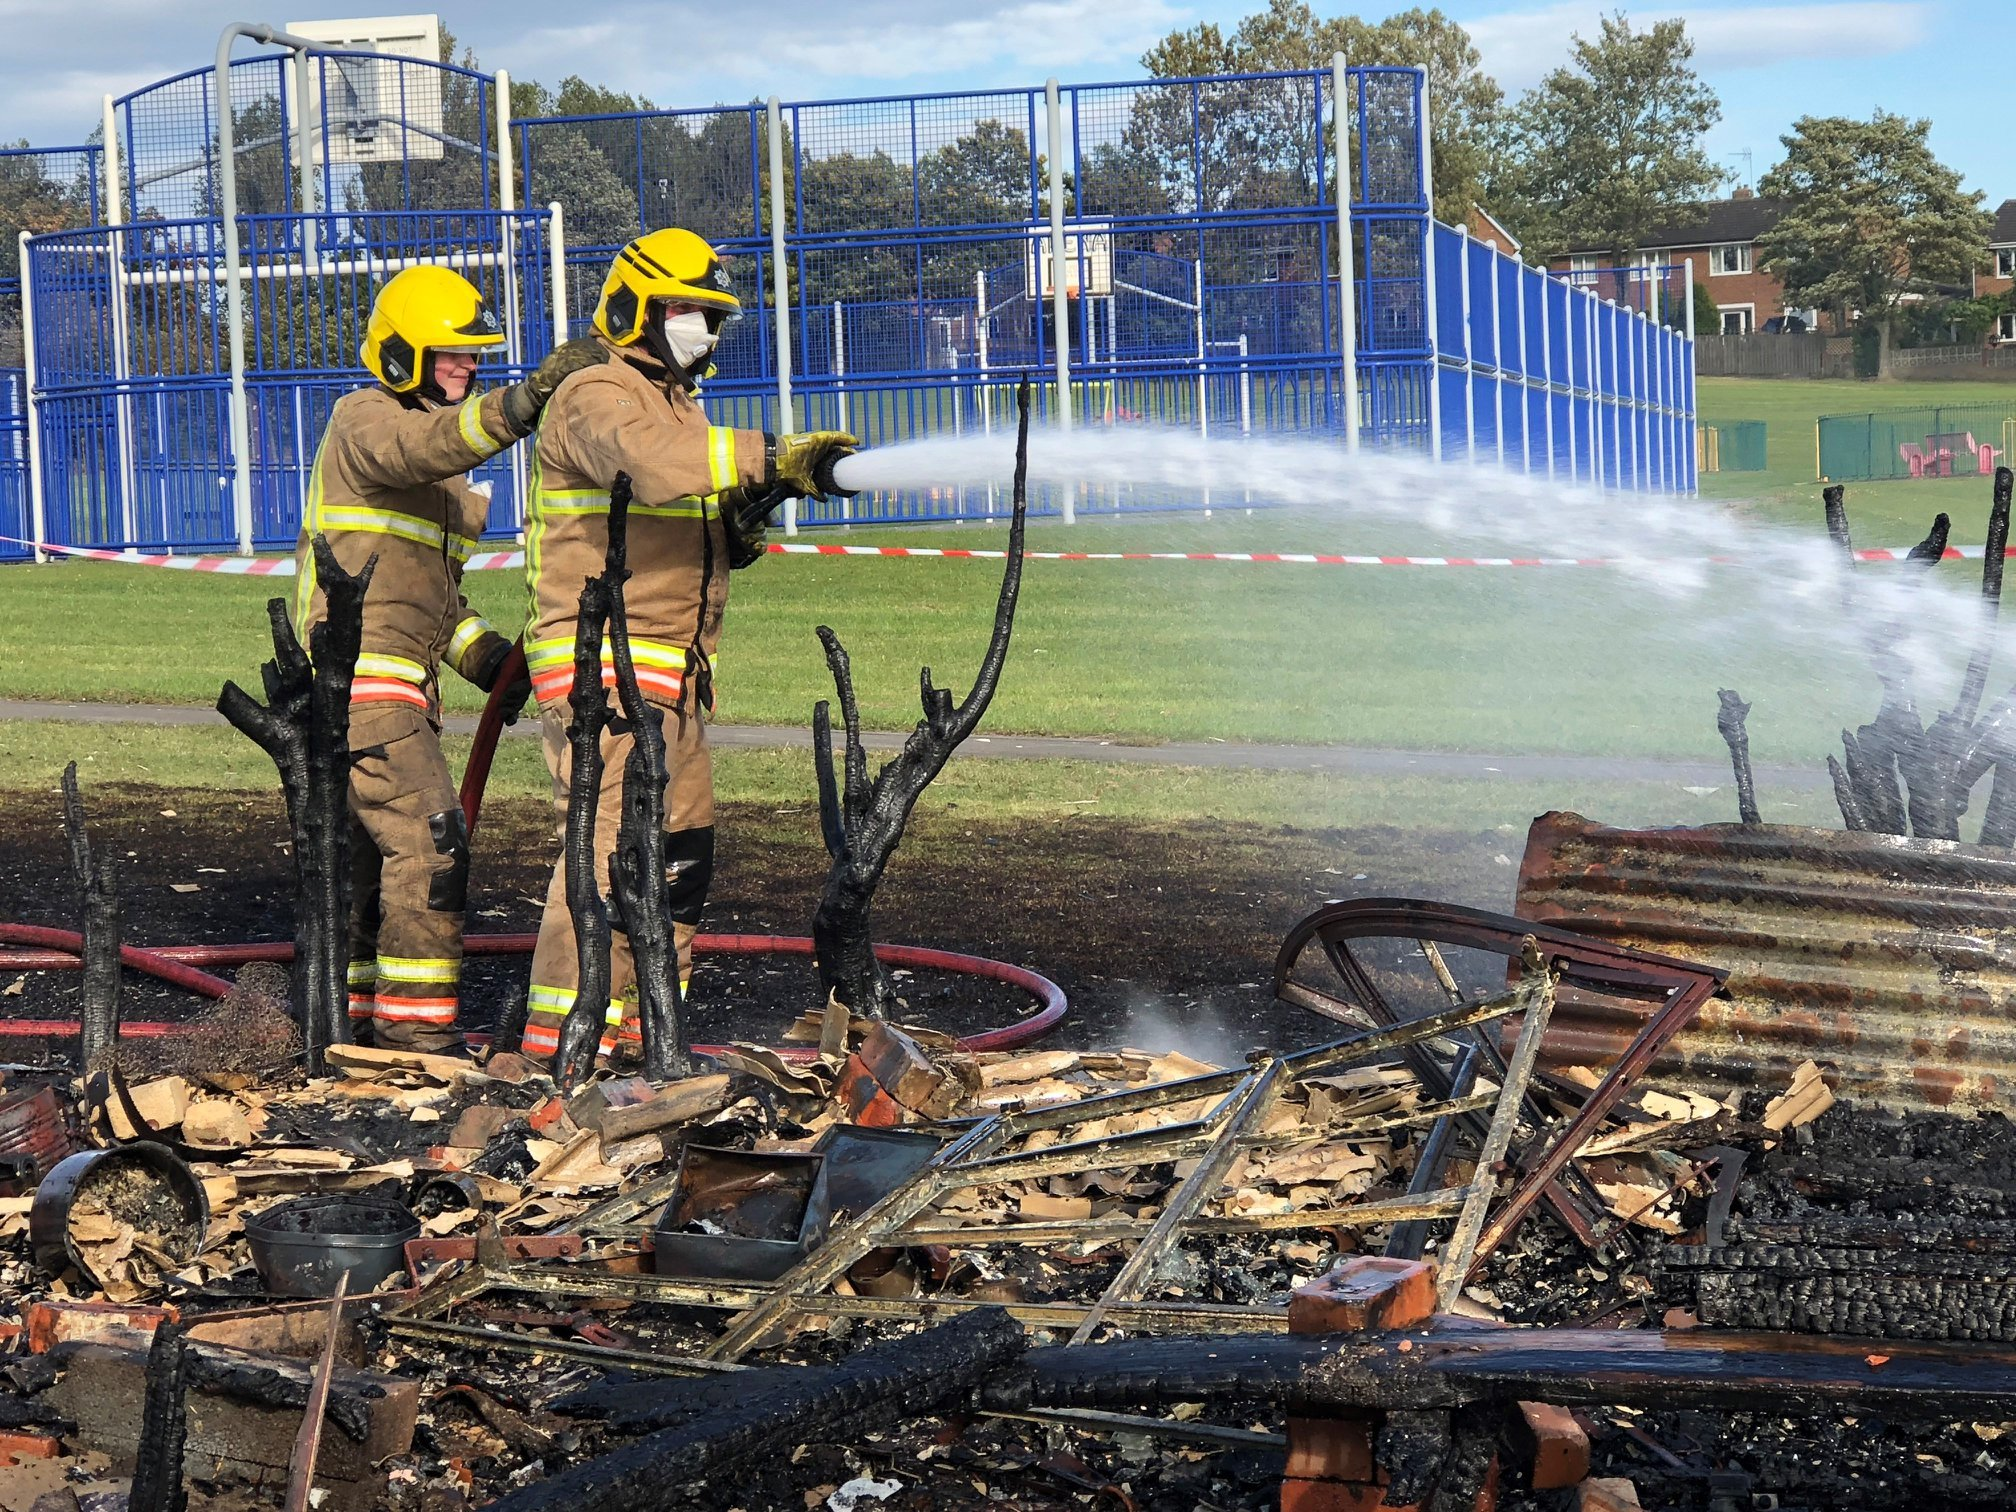 TACKLE: Firefighters at the scene of an allotment blaze in Bowburn, near Durham Picture: COUNTY DURHAM AND DARLINGTON FIRE AND RESCUE SERVICE